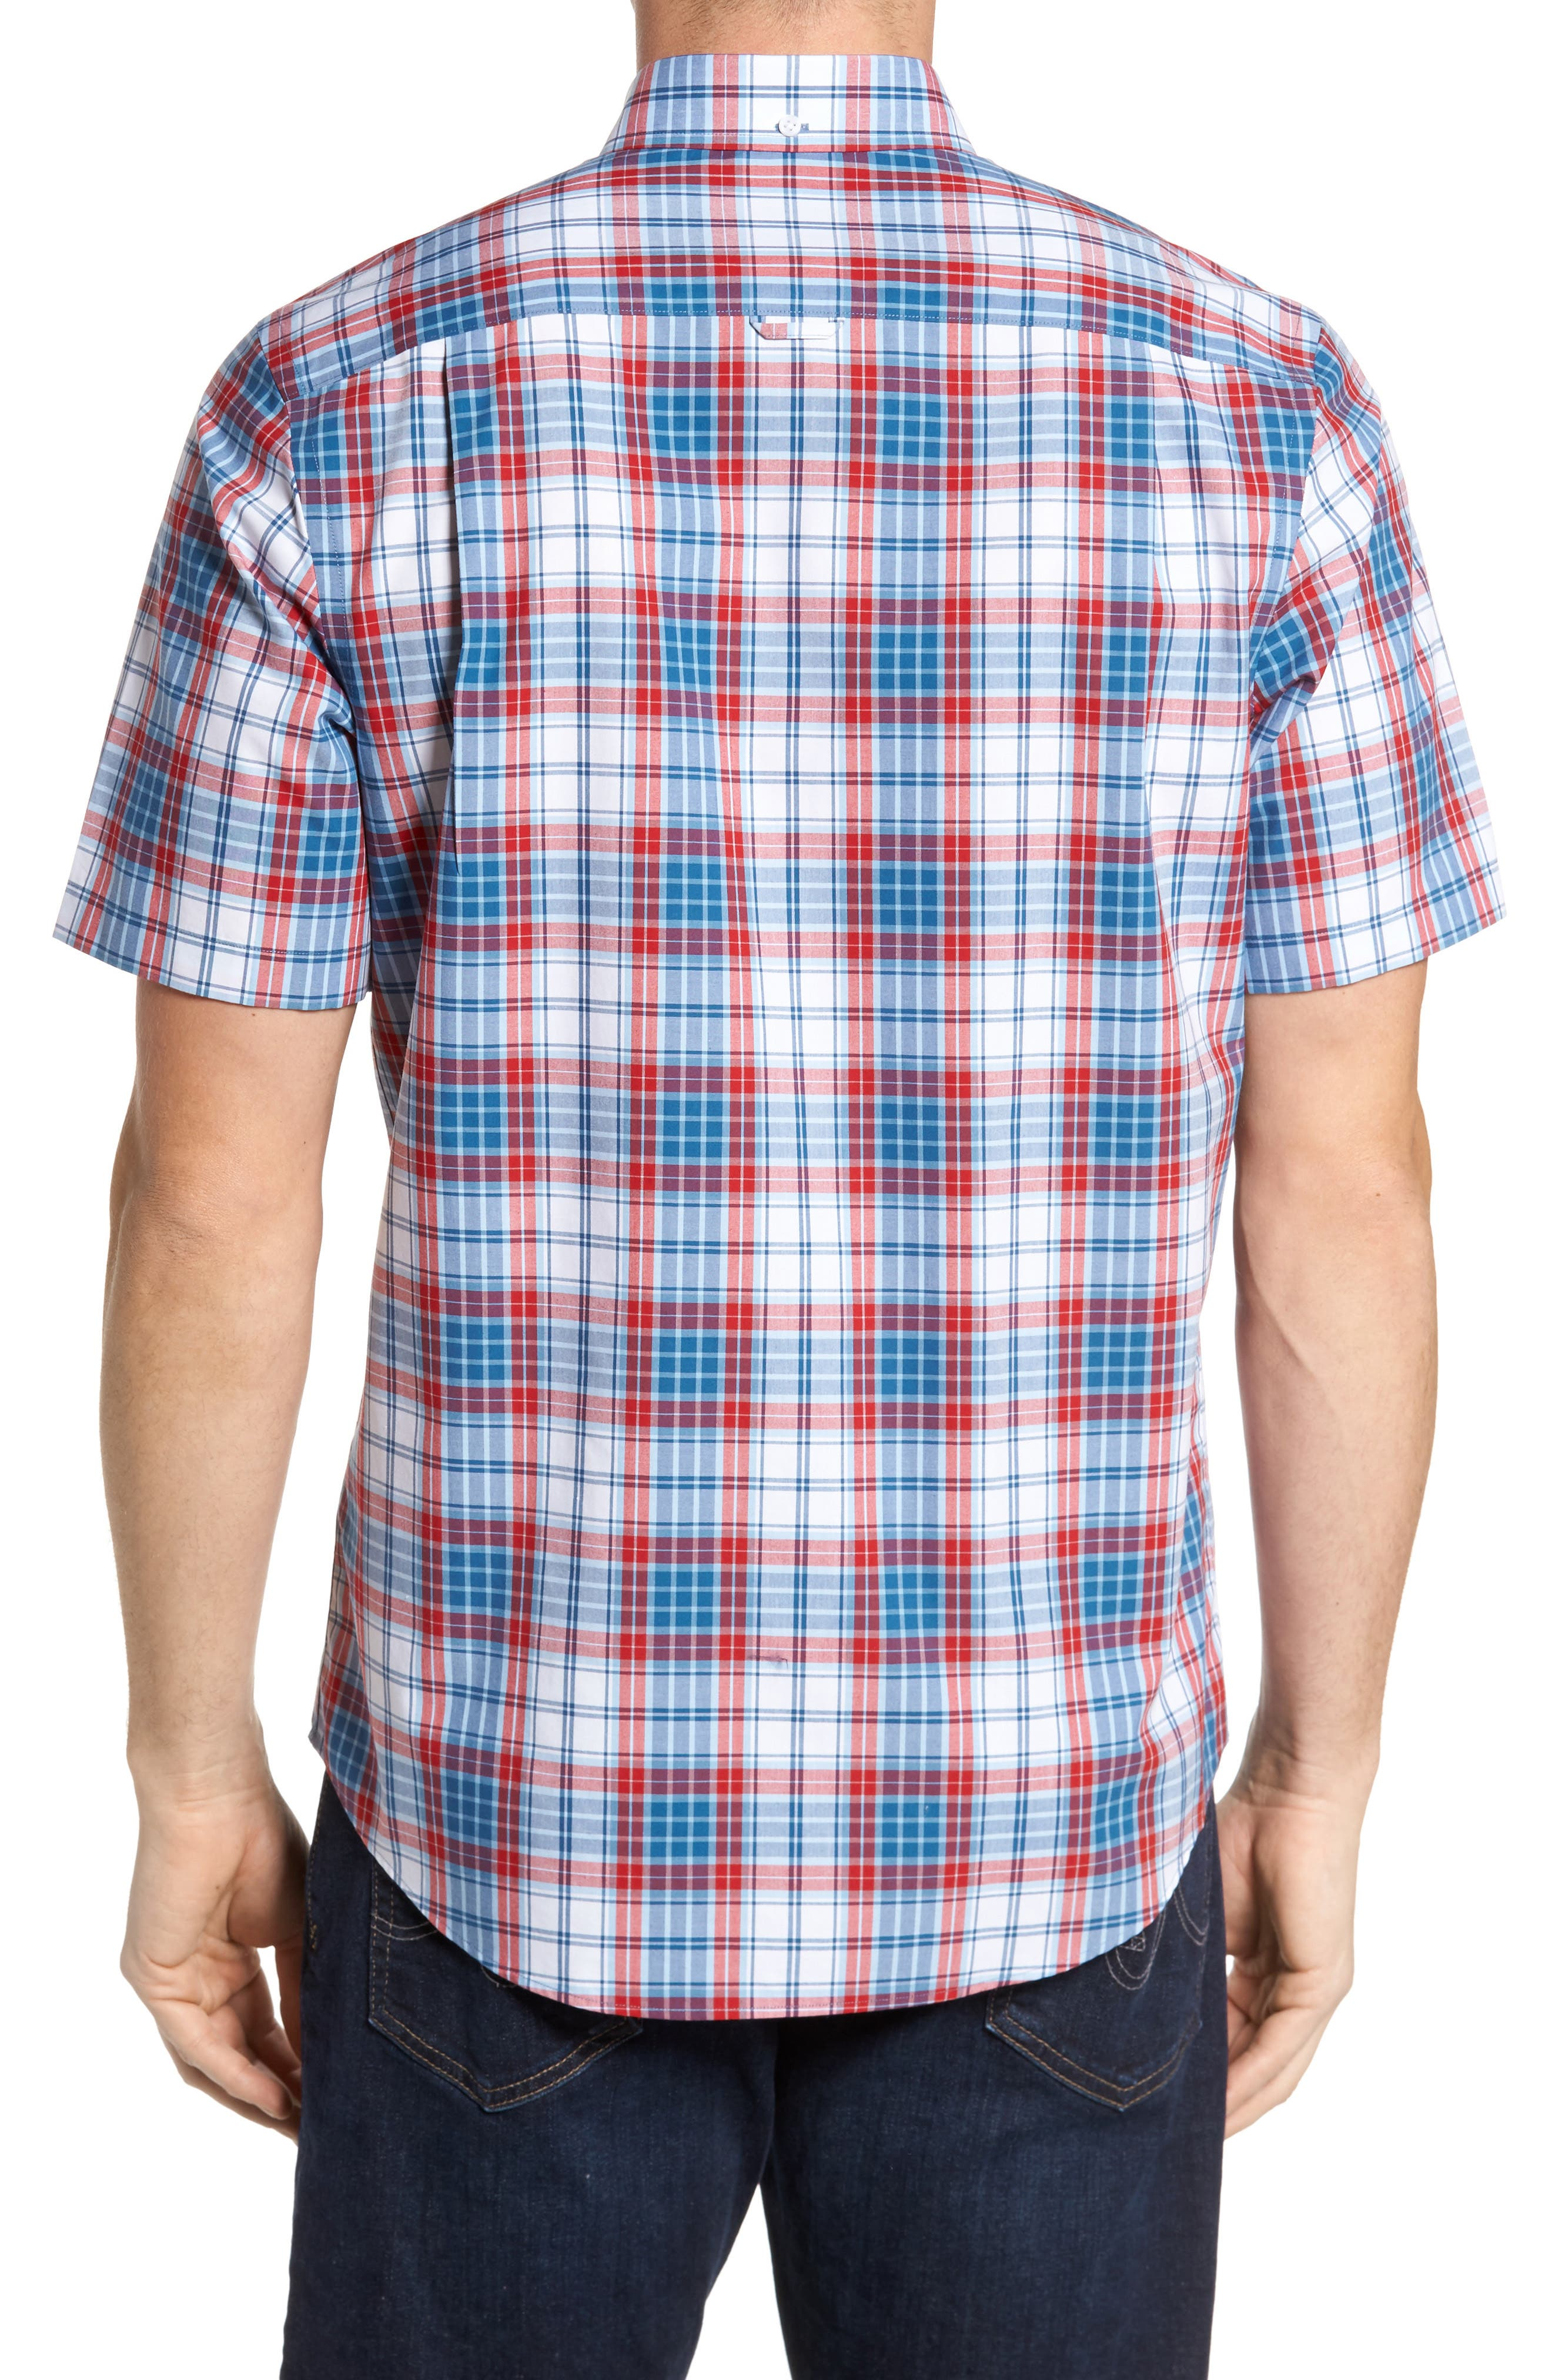 Plaid Sport Shirt,                             Alternate thumbnail 2, color,                             100